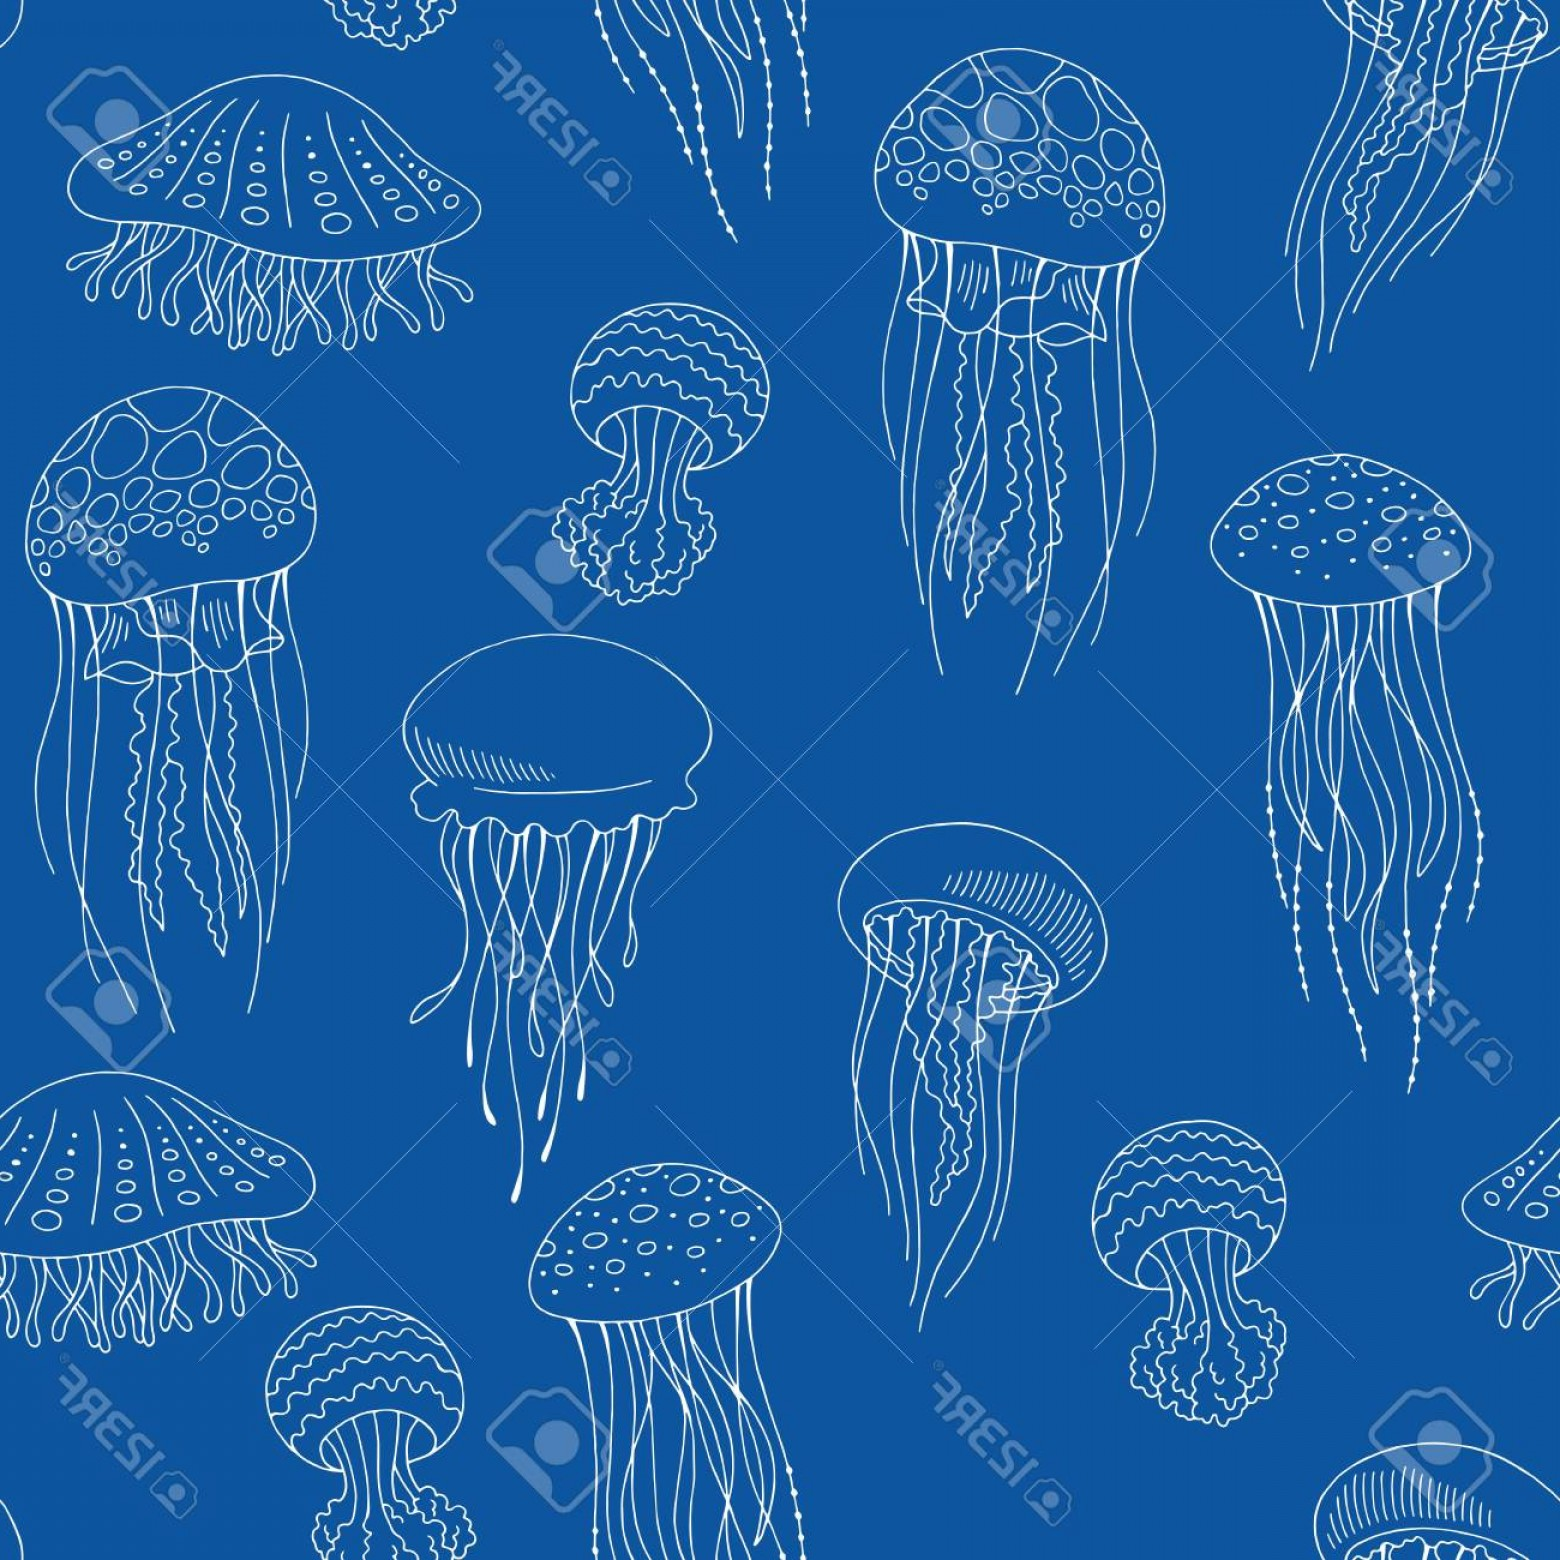 Jelly Fish Graphic Vector: Photostock Vector Jellyfish Graphic Blue Color Seamless Pattern Background Vector Illustration